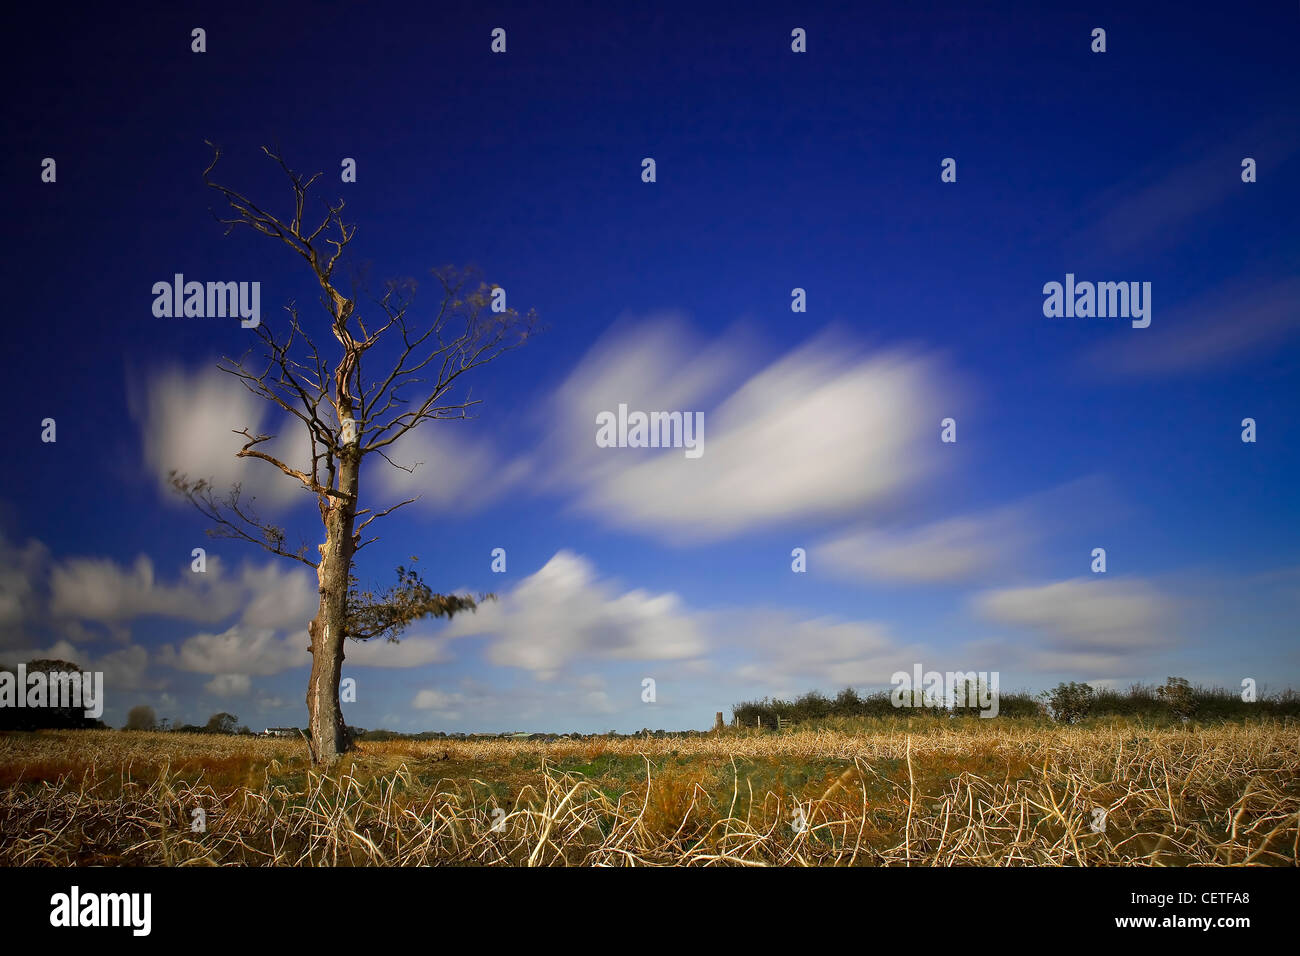 Blue skies over a leafless tree and field Oxford. - Stock Image